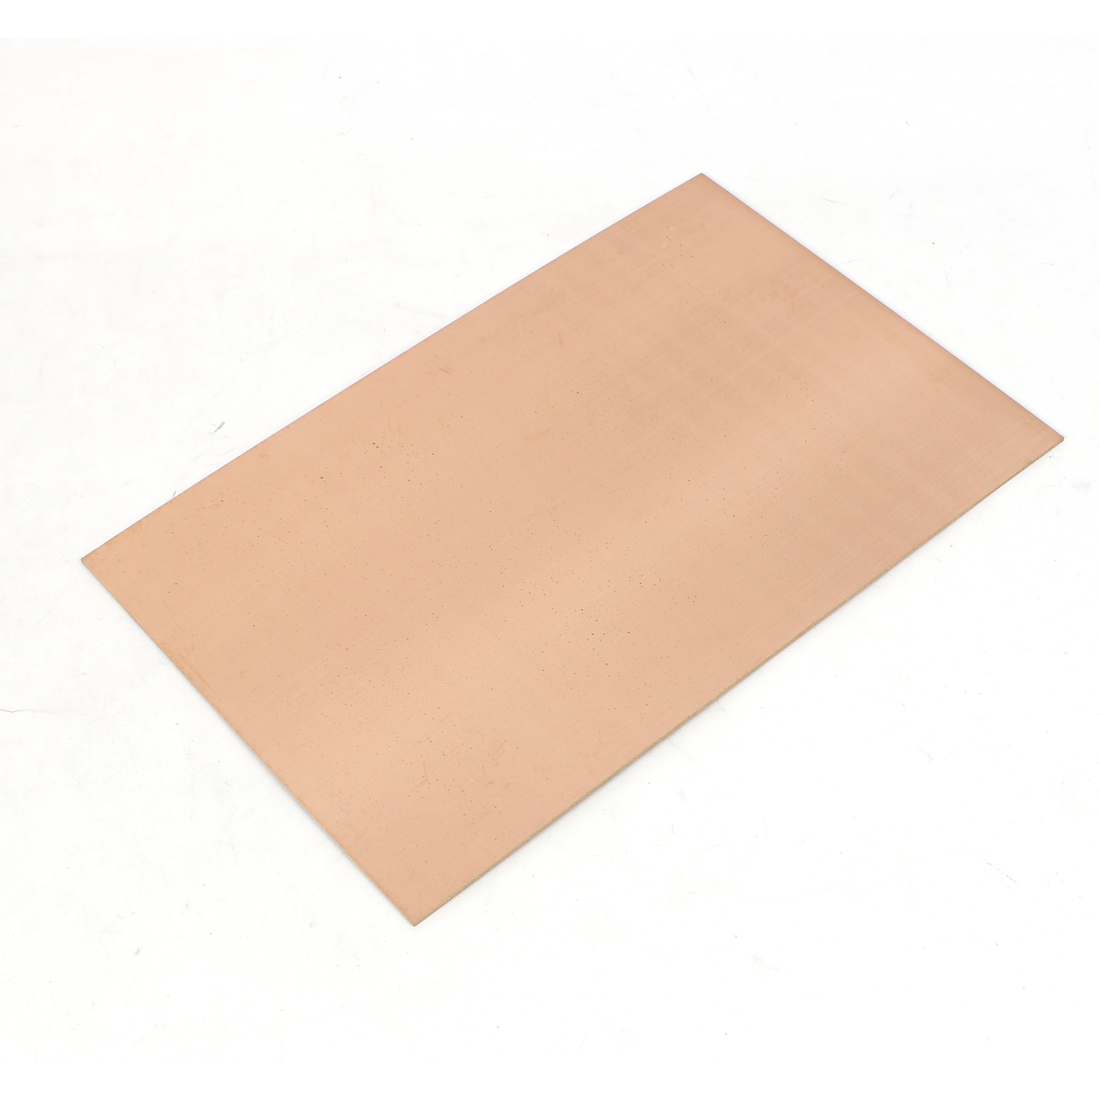 30cm x 20cm Single Side Copper Clad PCB Laminate Board